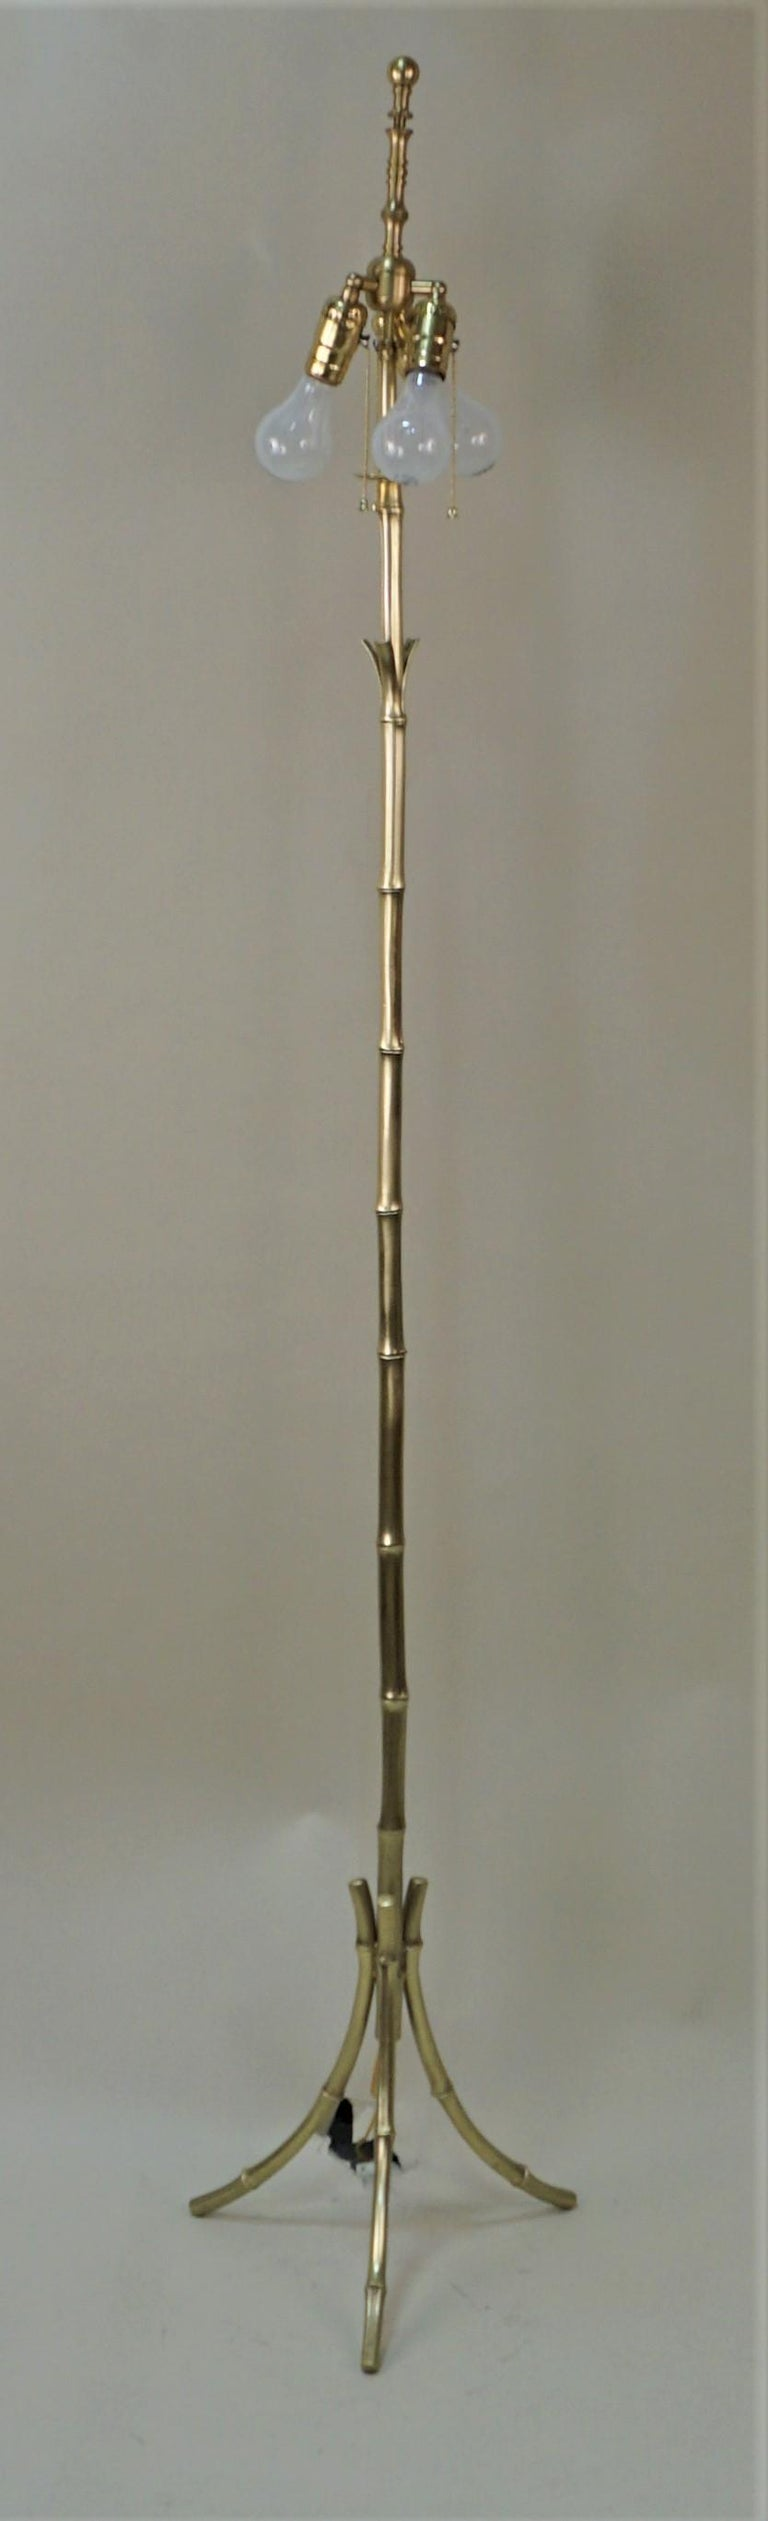 Mid-20th Century French Maison Baguès Bronze Floor Lamp For Sale